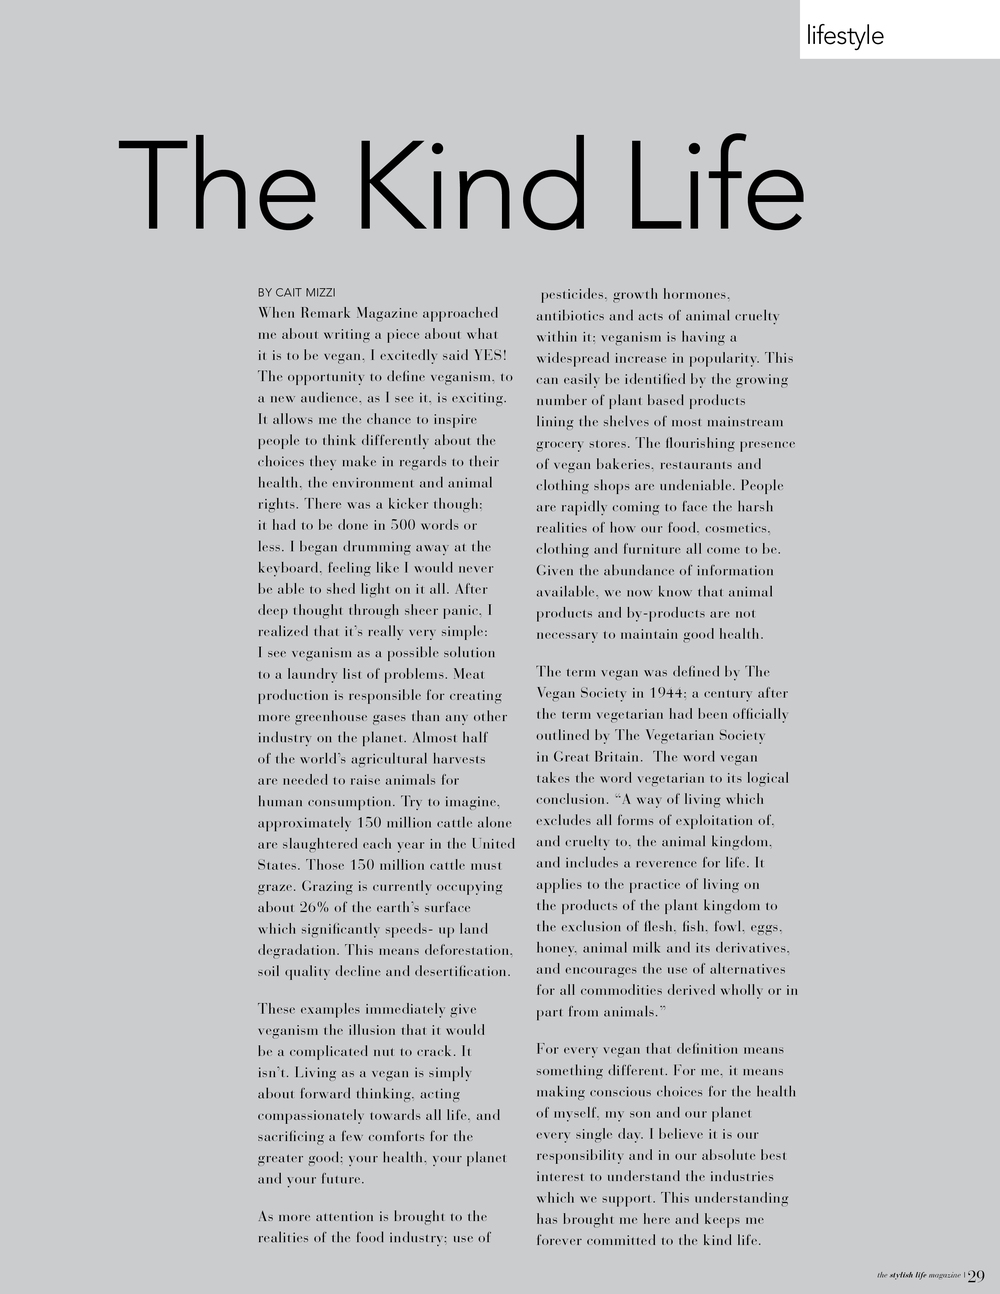 The Kind Life - Remark Magazine Fall 2013